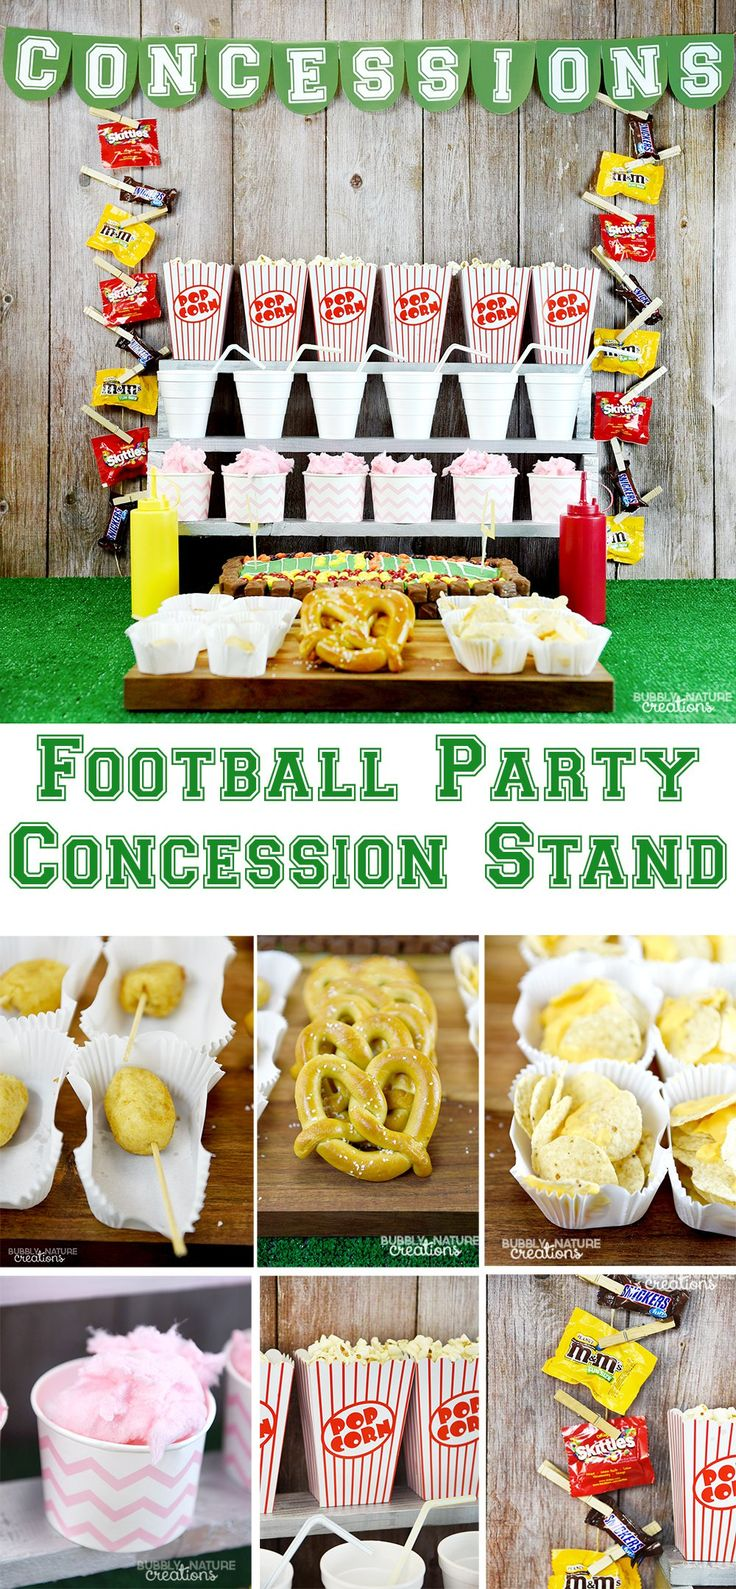 Football Party Concession Stand! Such a fun idea for a super bowl party with free printables